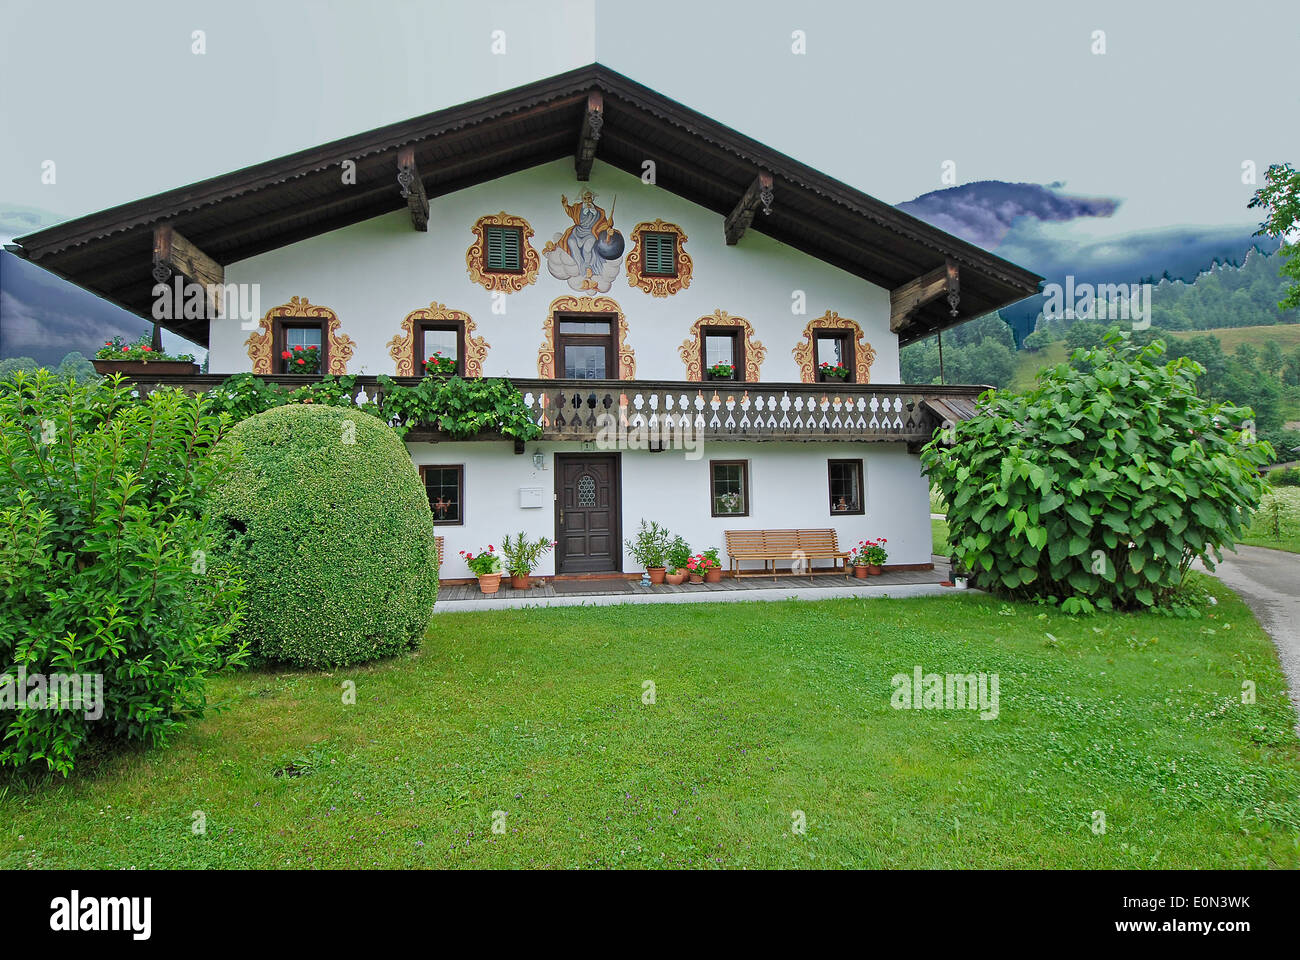 Cottage Haus Haus Dorf House Cottage Lüftelmalerei Lüfte Painting Stock Photo